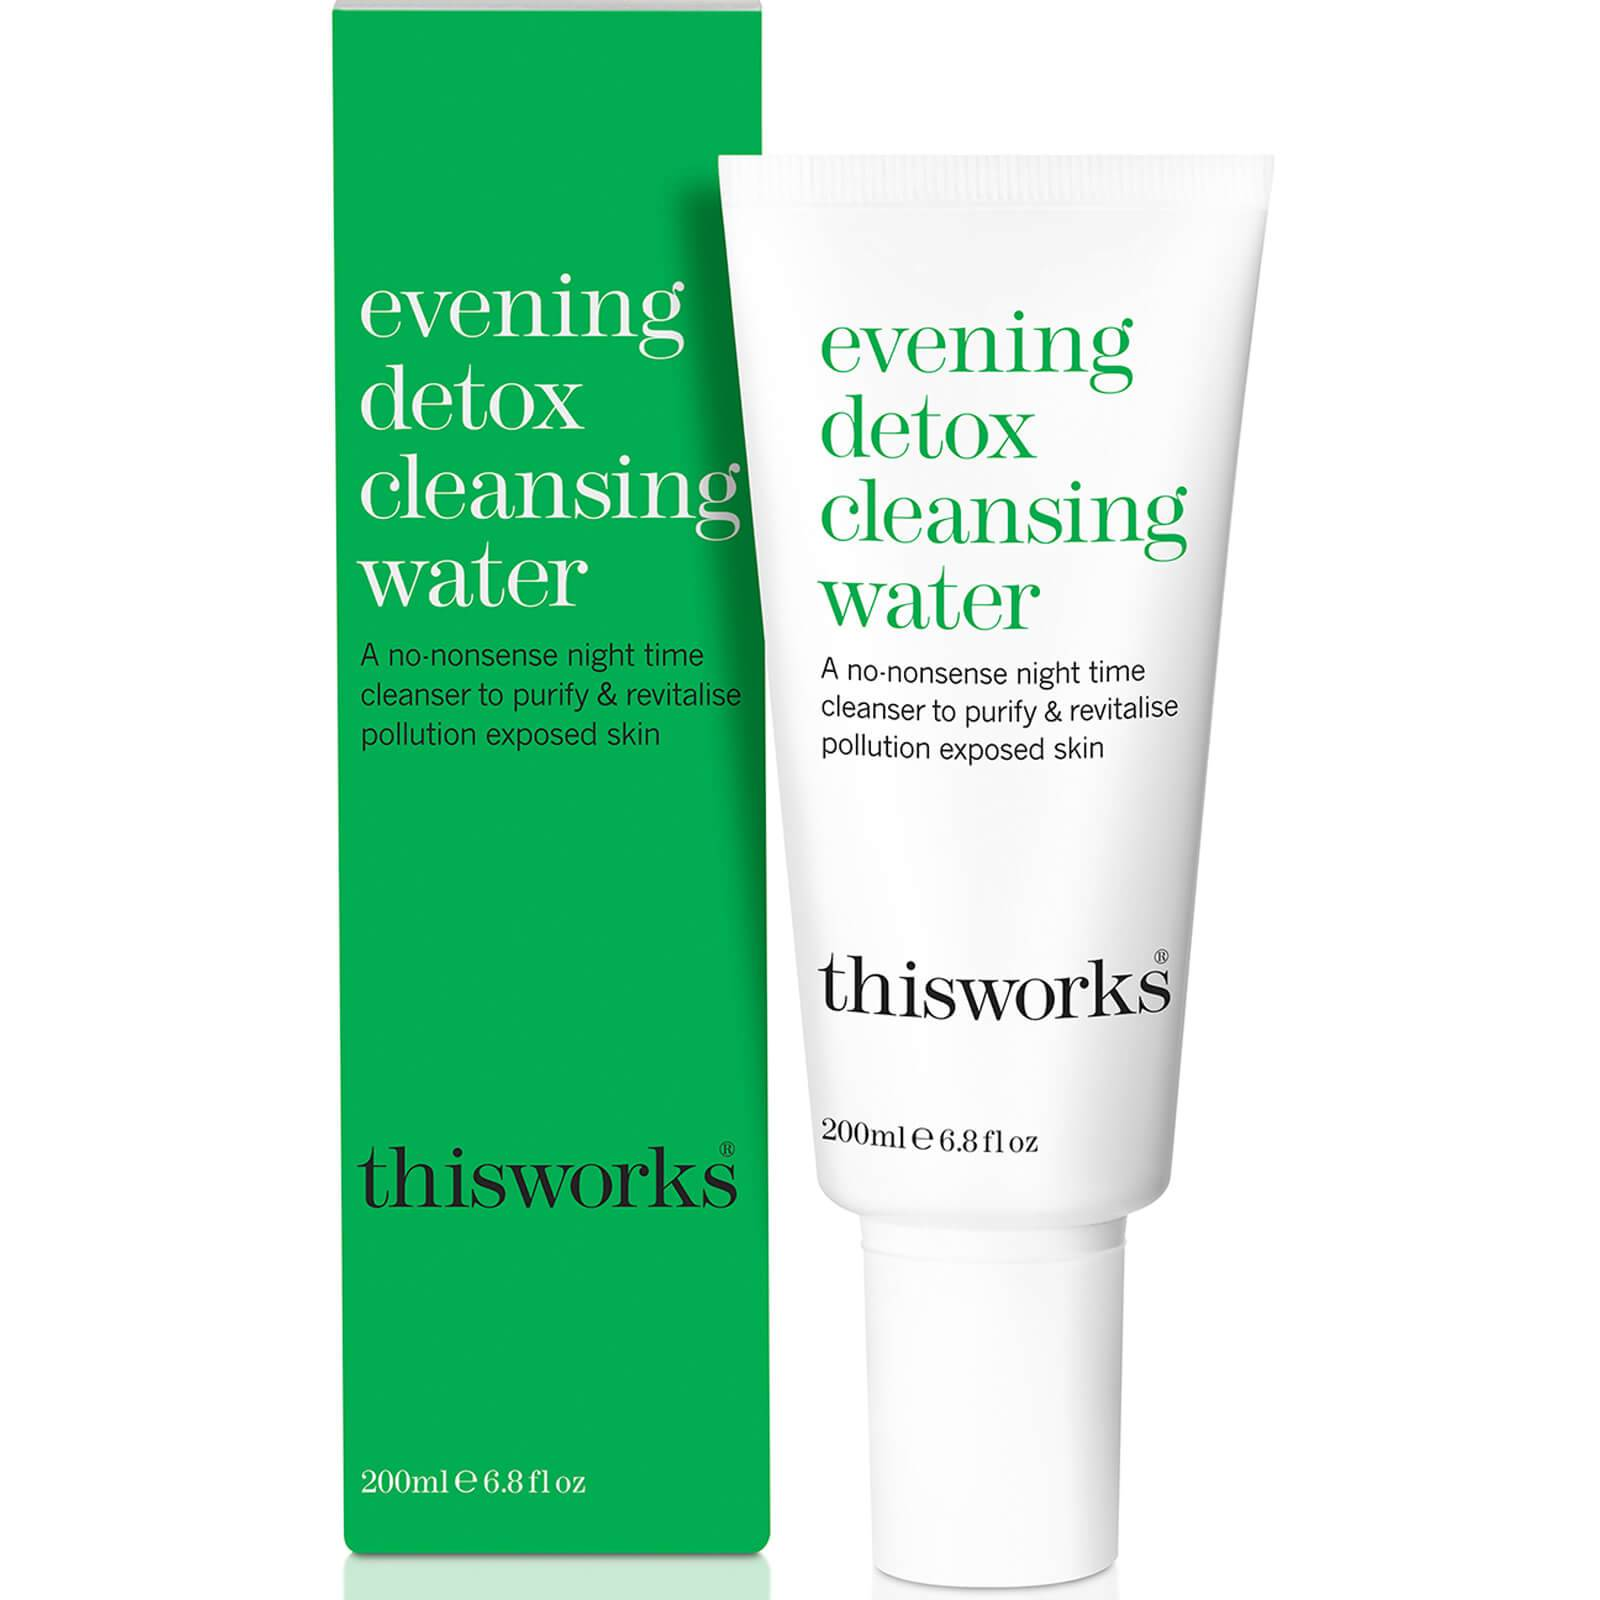 this works Eau Nettoyante Détoxifiante pour le Soir Evening Detox Cleansing Water this works 200 ml